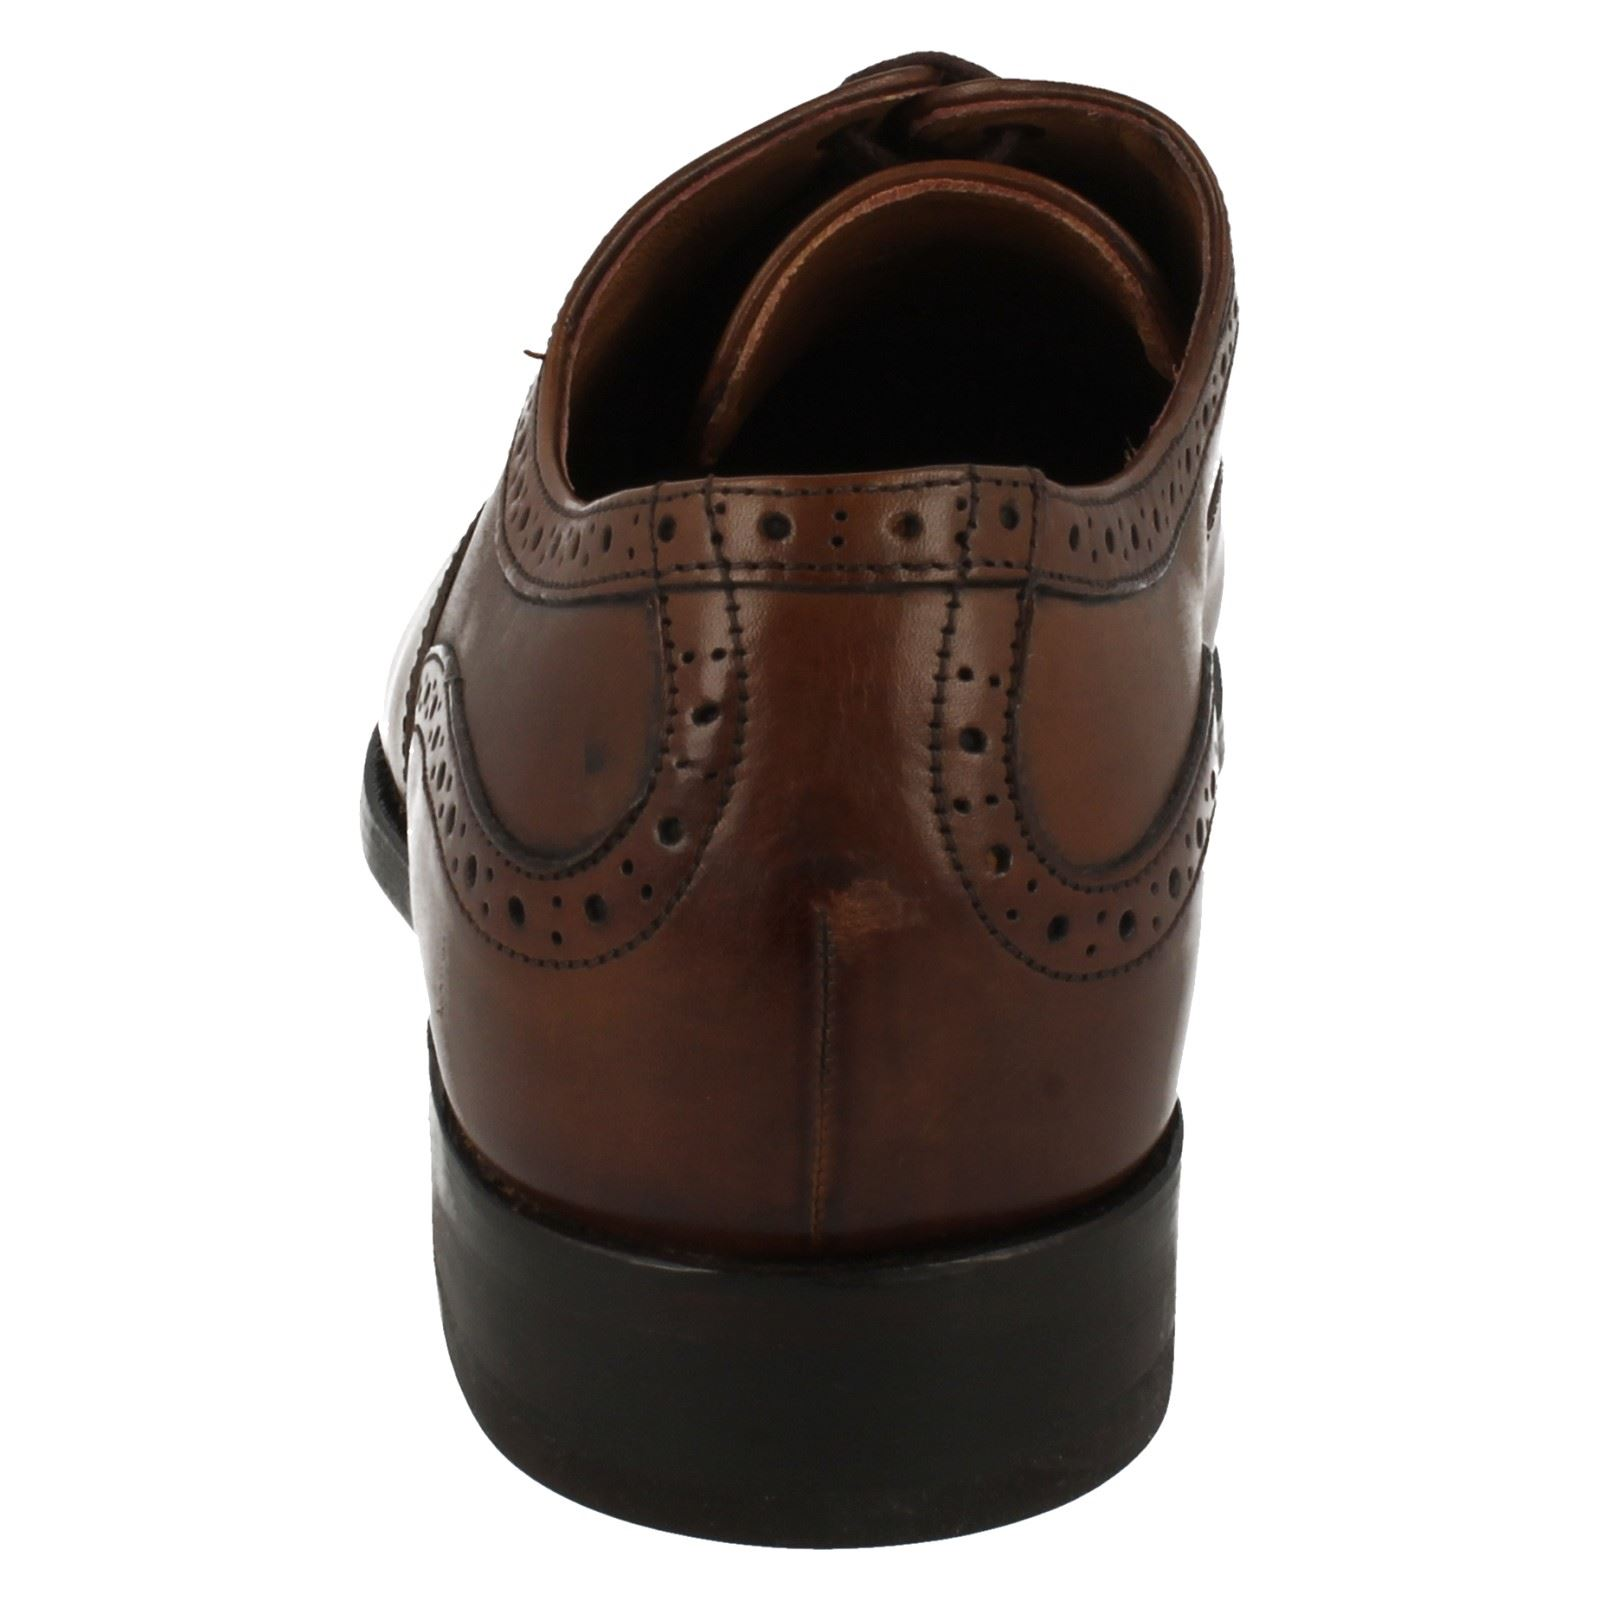 Cap marrón Zapatos para Clarks Blackcheck Low Block hombre cuero Lace Formal de Heel Up Cognac 7ZZa6nwW